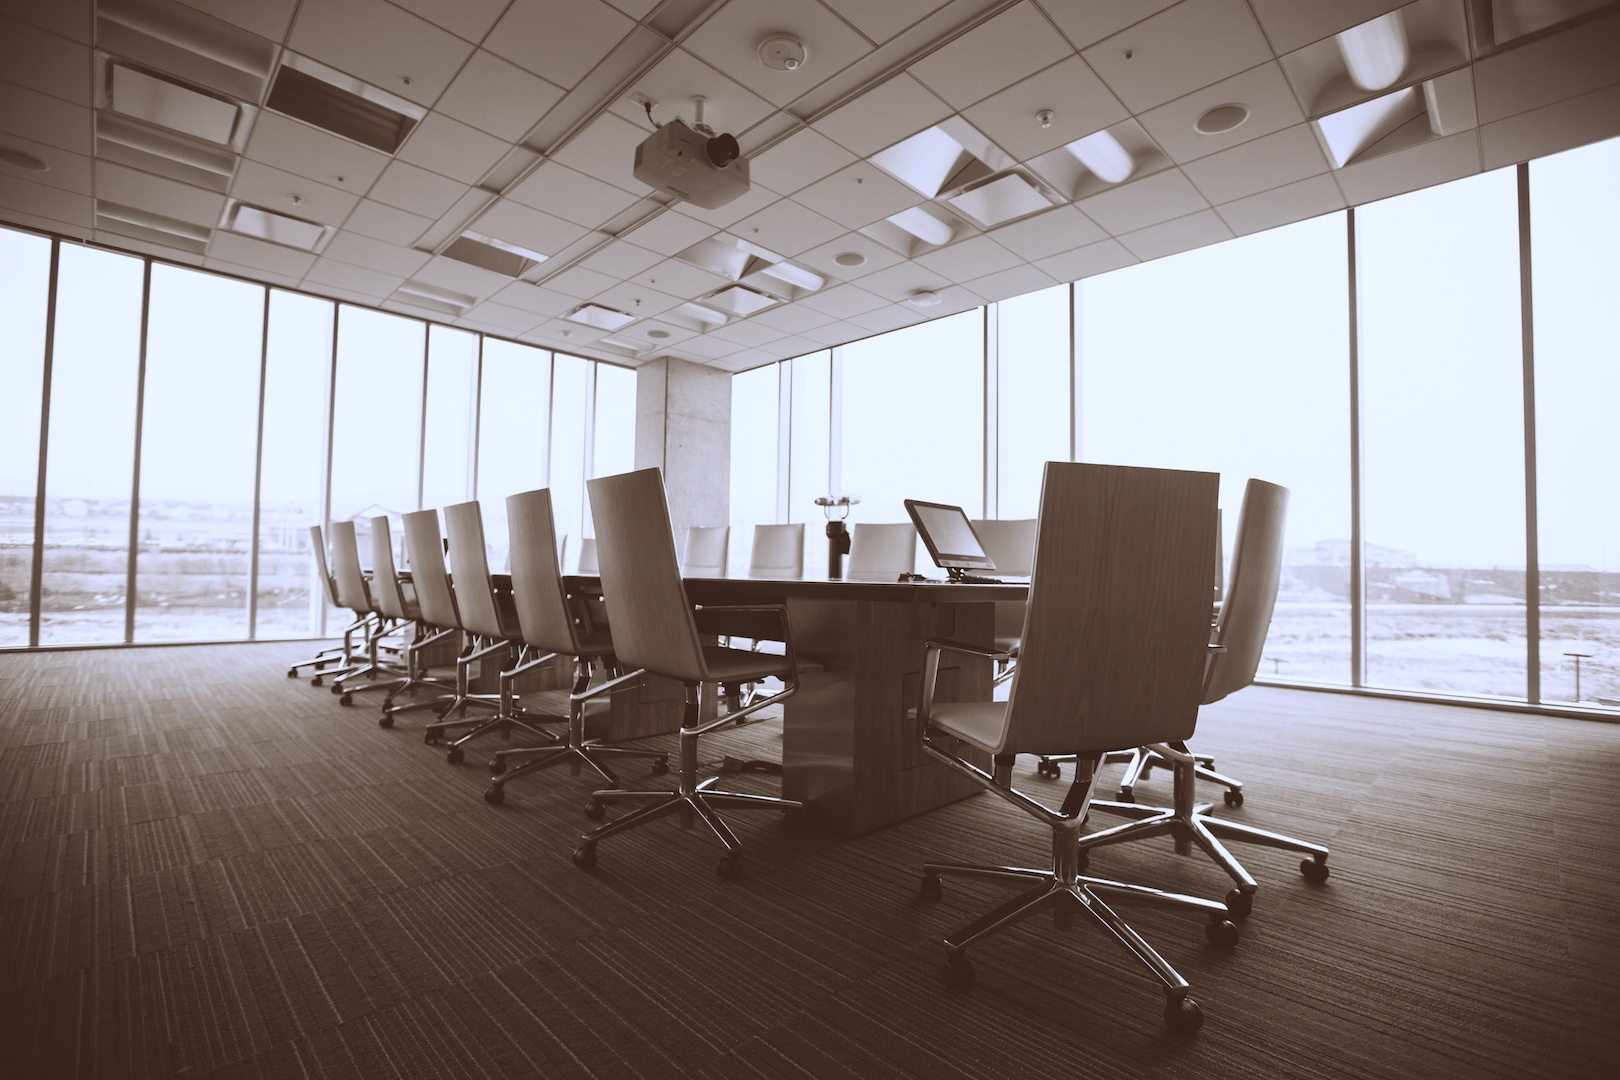 B2B Sales: Get the Chief Decision Makers On Board